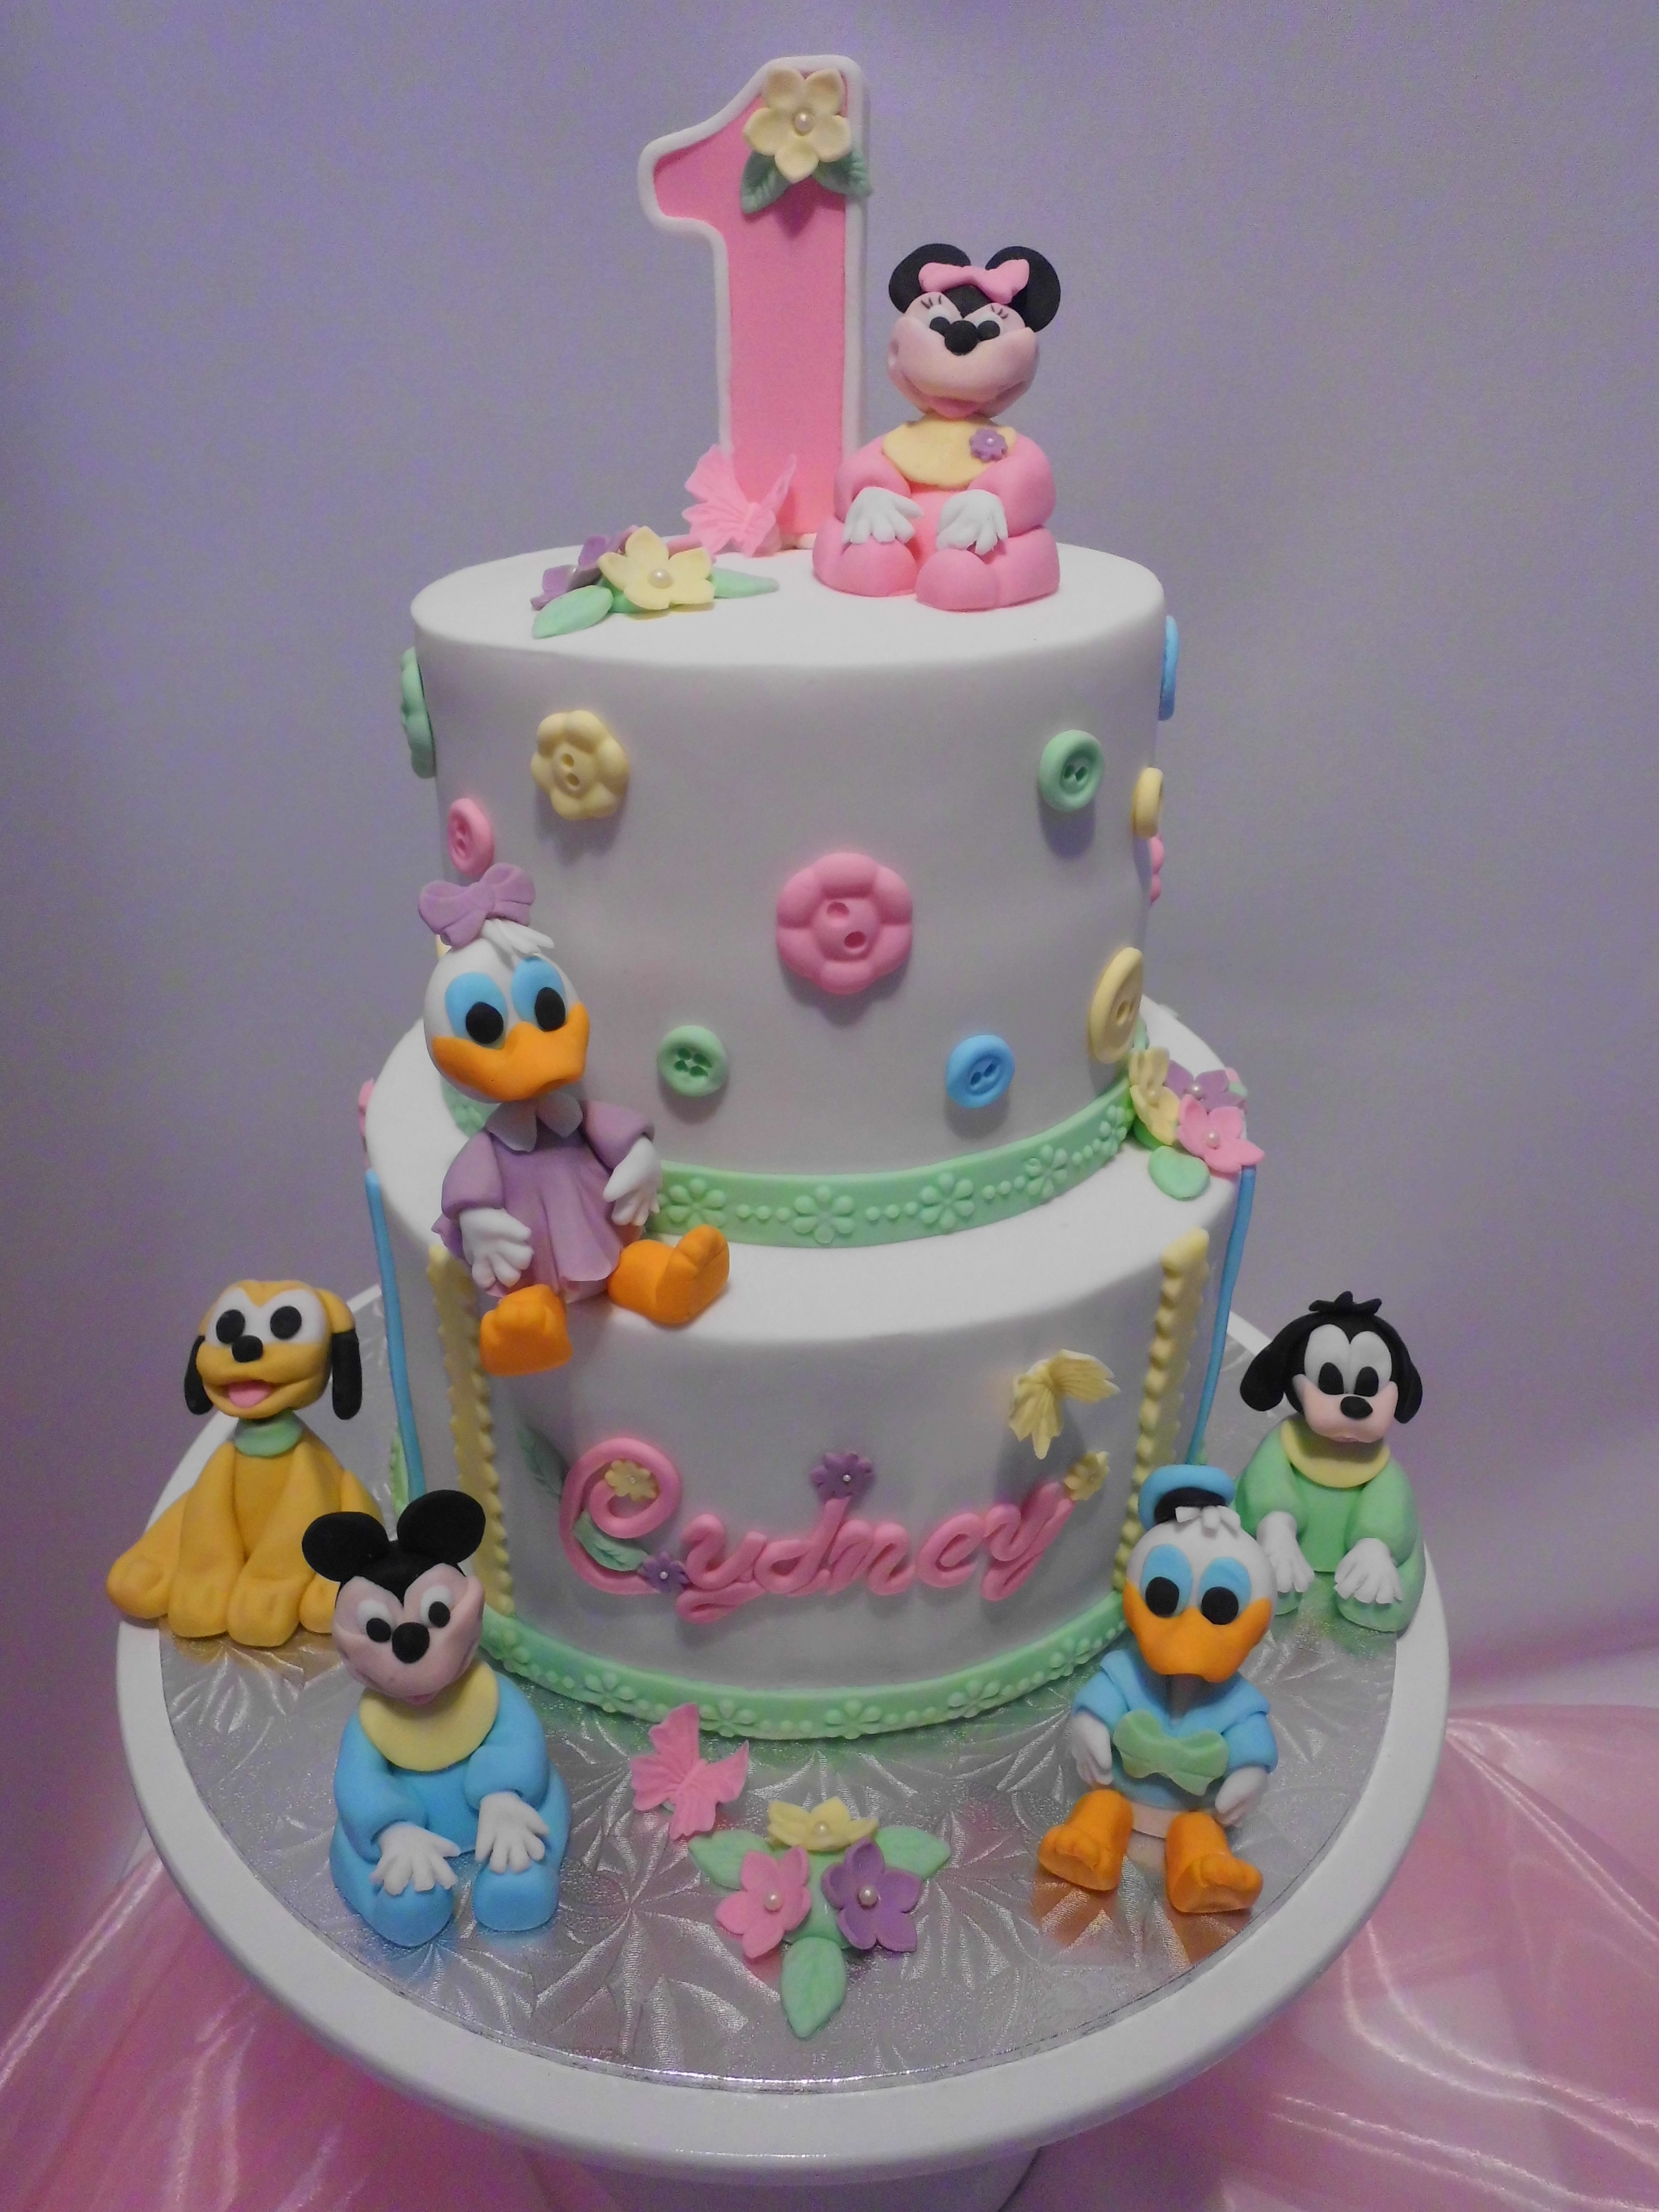 Disney Princess Birthday Cake Singapore